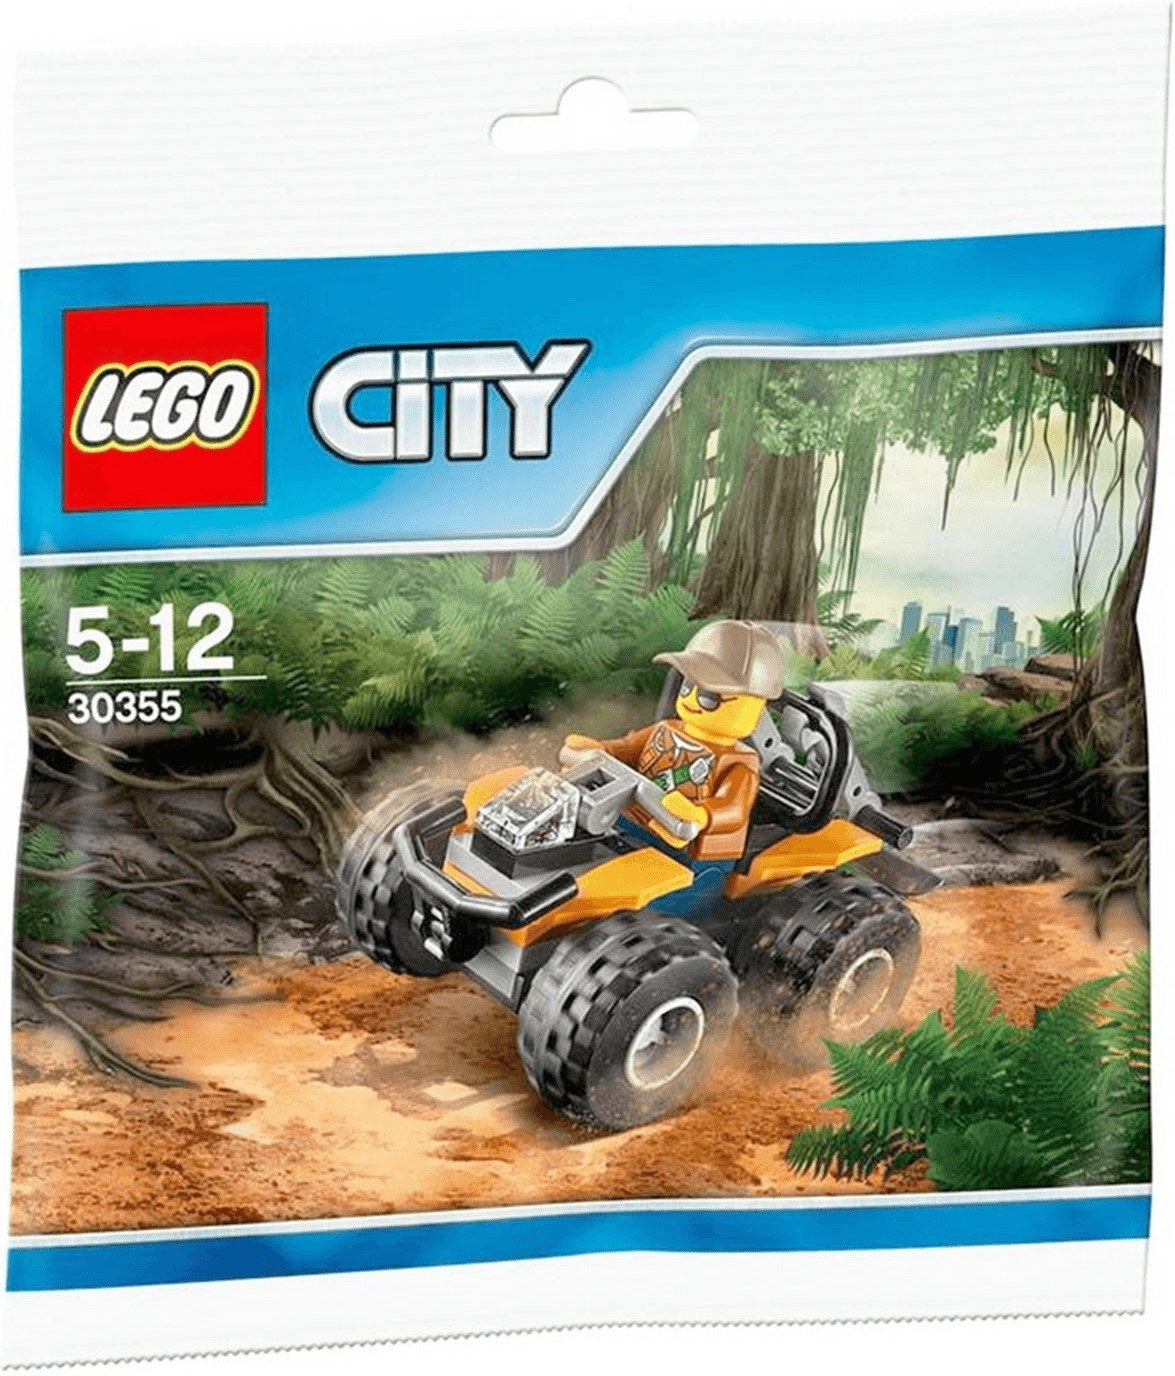 LEGO City - Dschungel-Quad (30355)